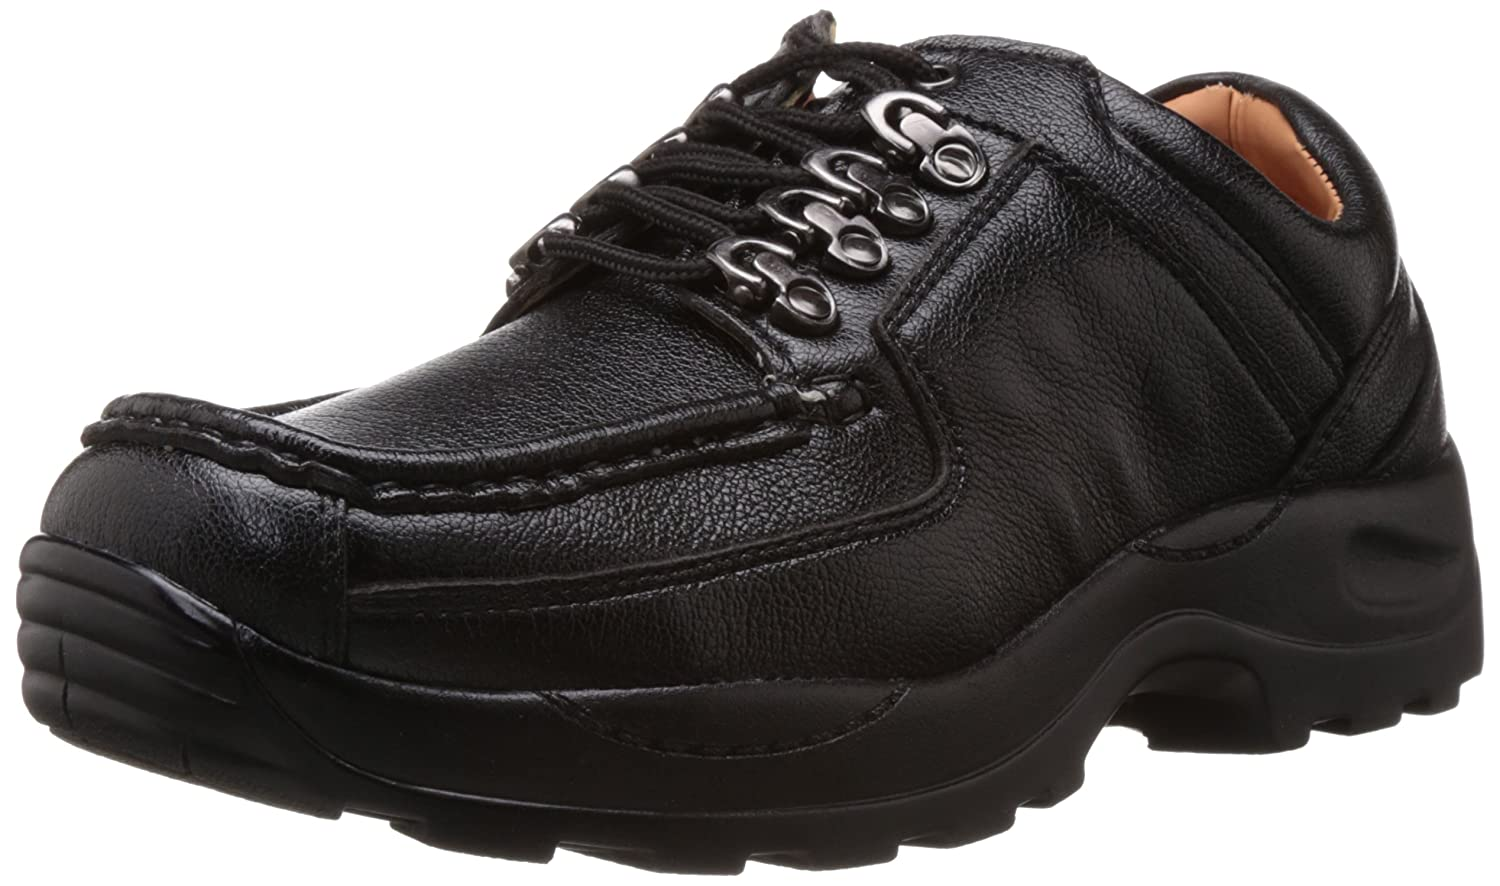 Action Shoes Trekking and Hiking Boots